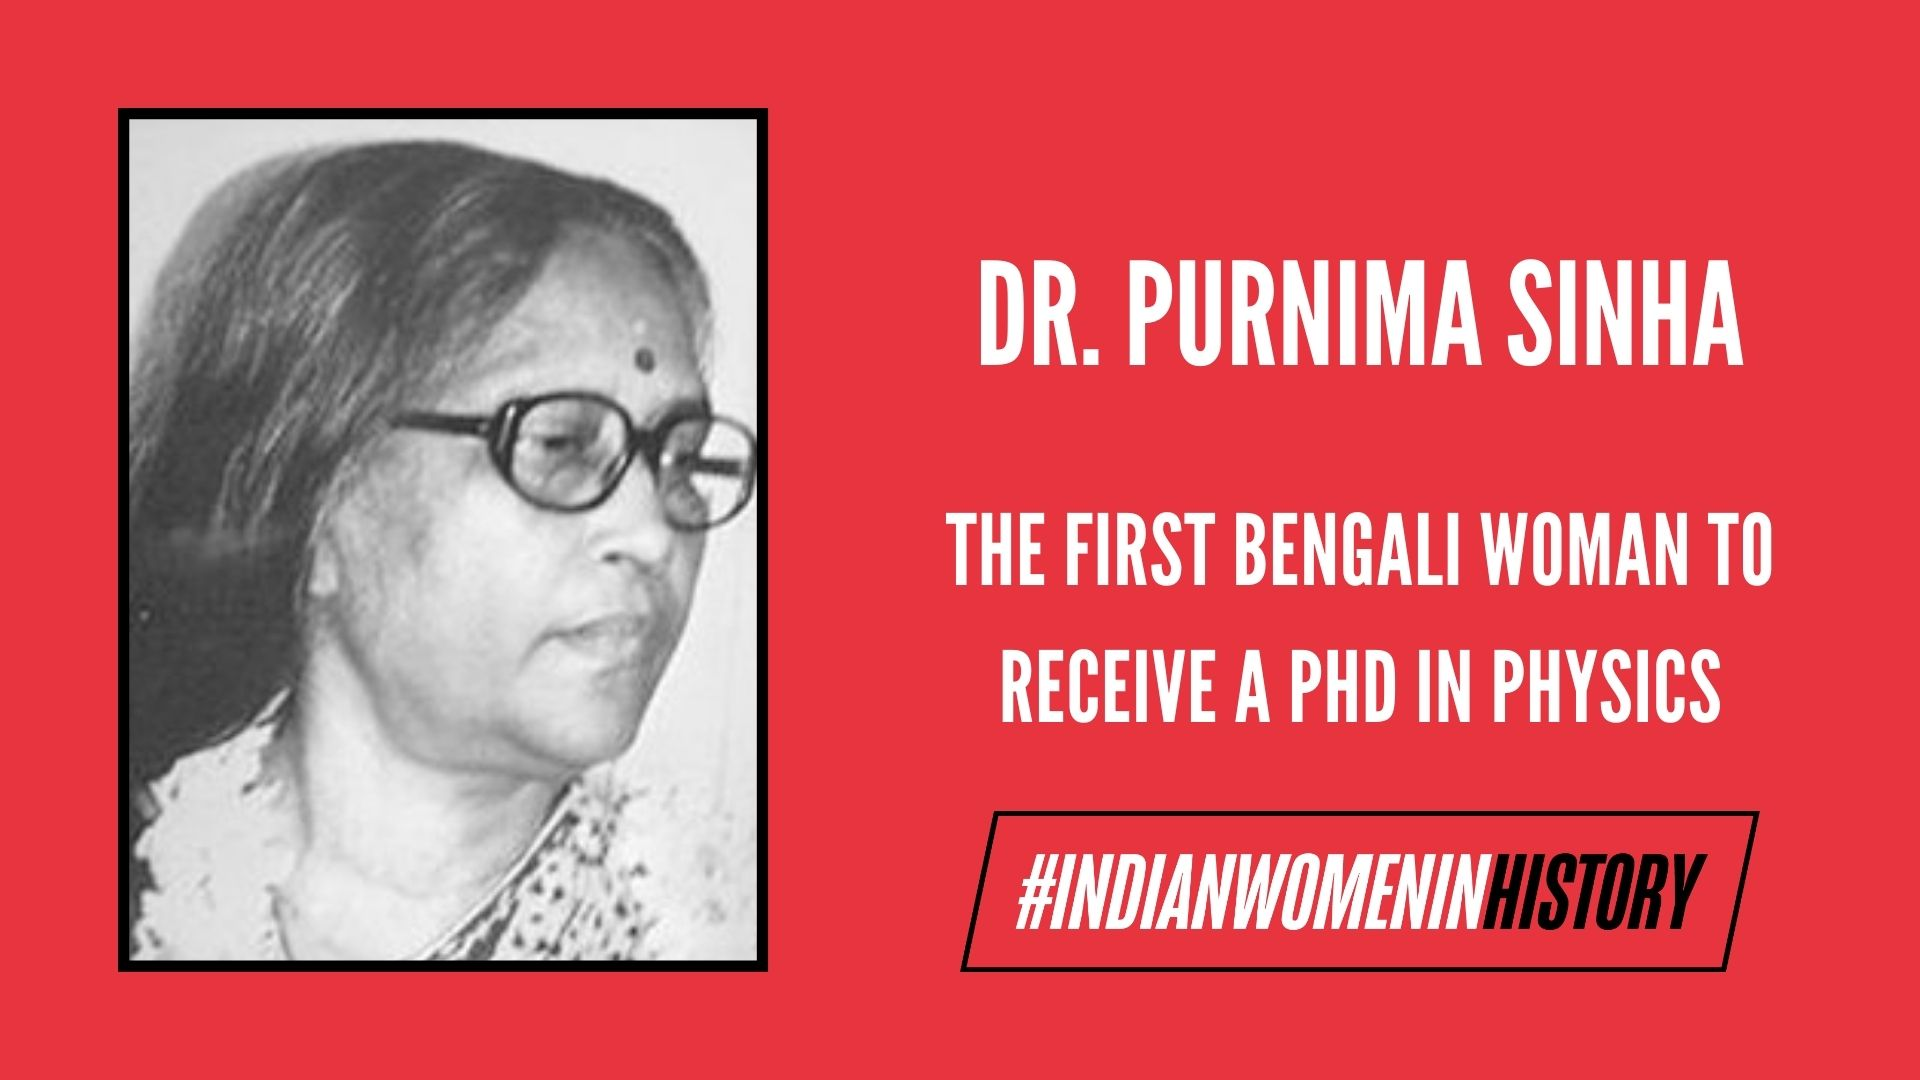 Dr. Purnima Sinha: The First Bengali Woman To Receive A Doctorate In Physics